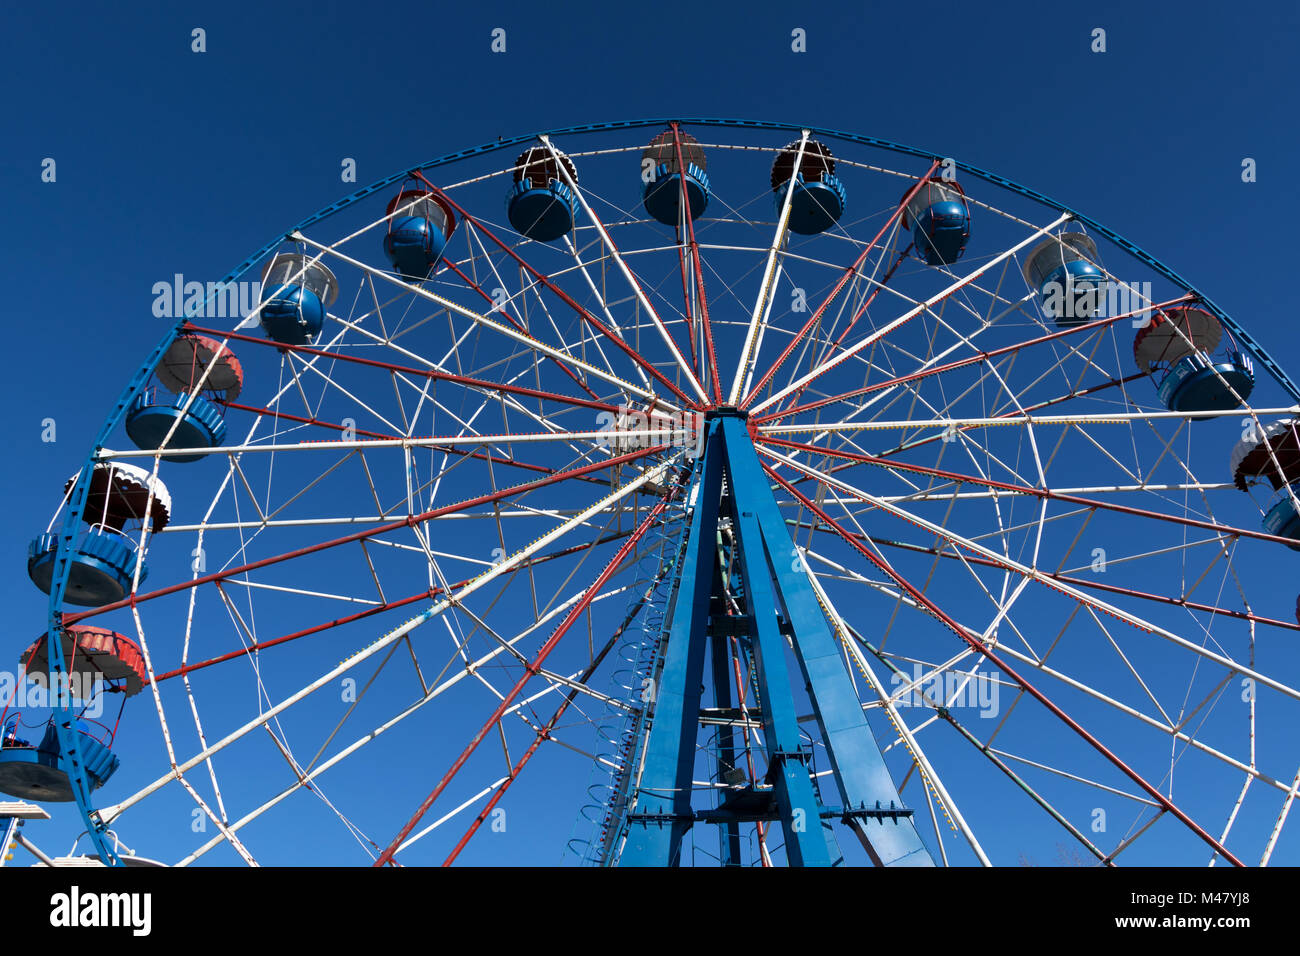 Ferris wheel waiting to entertain guests of the park - Stock Image